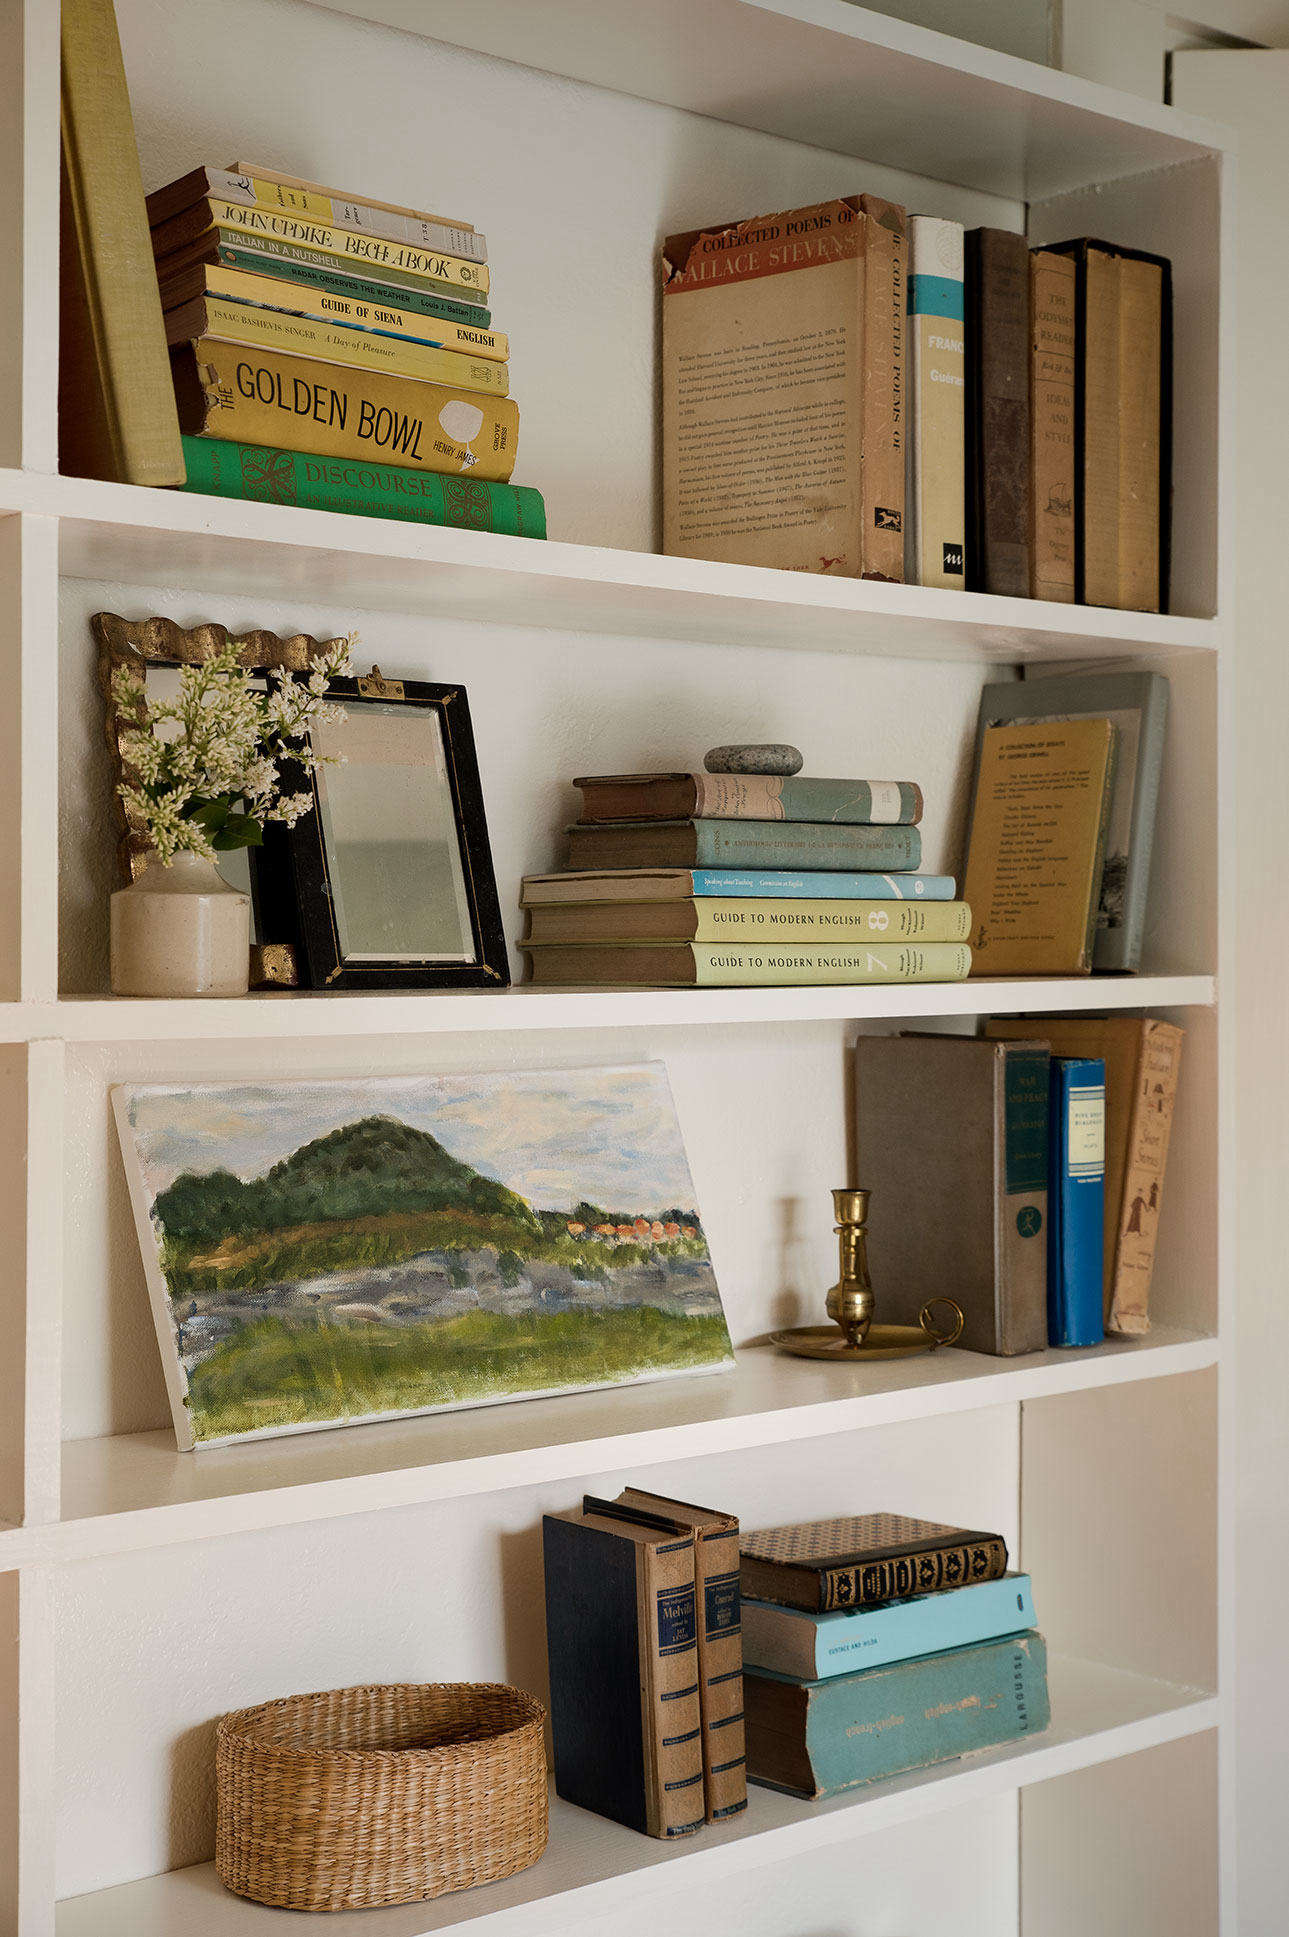 A bookshelf in Julie's Wellfleet house, post-decluttering. These volumes, as well as a landscape study by her daughter, survived the purge. Photograph byJustine Hand for Remodelista, fromBefore & After: A Low-Cost Summer Guest Room Makeover, Cape Cod Edition.